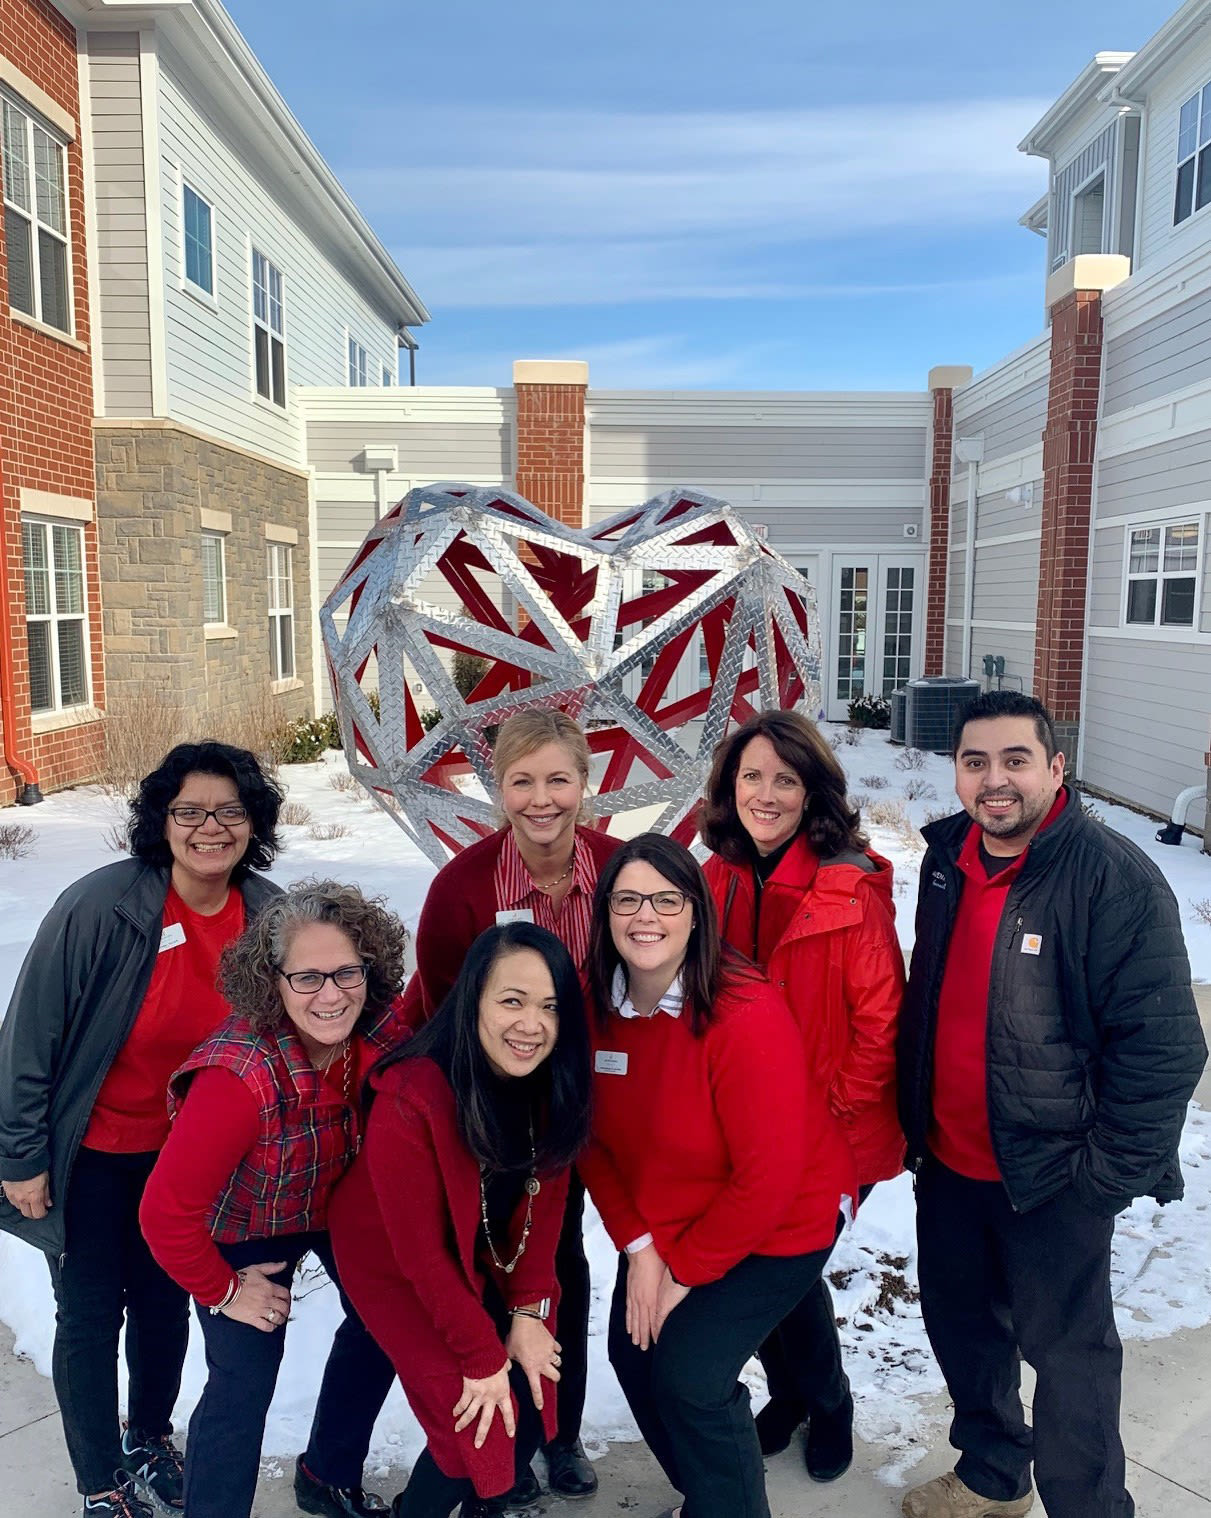 The team wearing red in the winter - Avenida Naperville